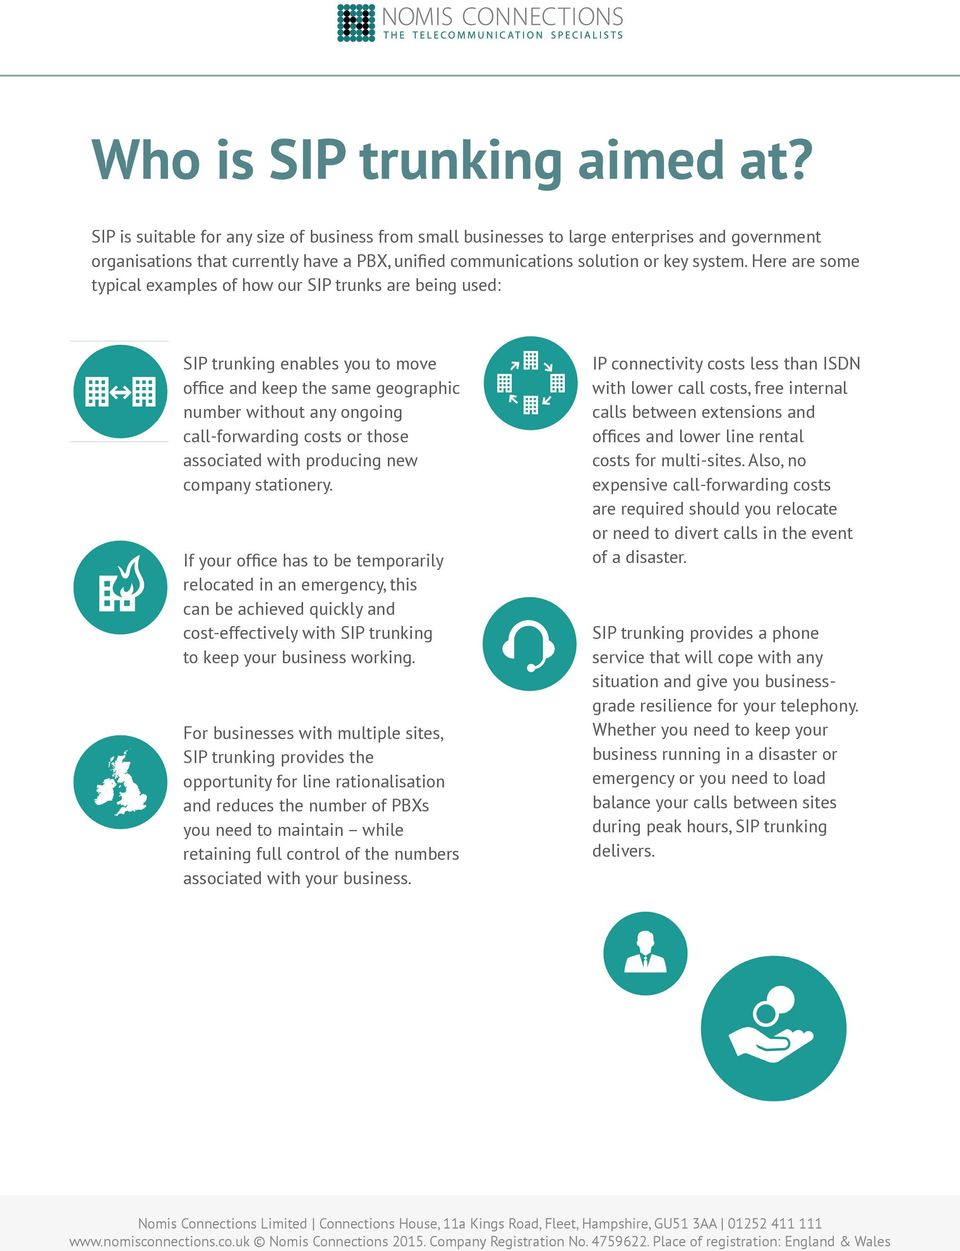 Here are some typical examples of how our SIP trunks are being used: SIP trunking enables you to move office and keep the same geographic number without any ongoing call-forwarding costs or those